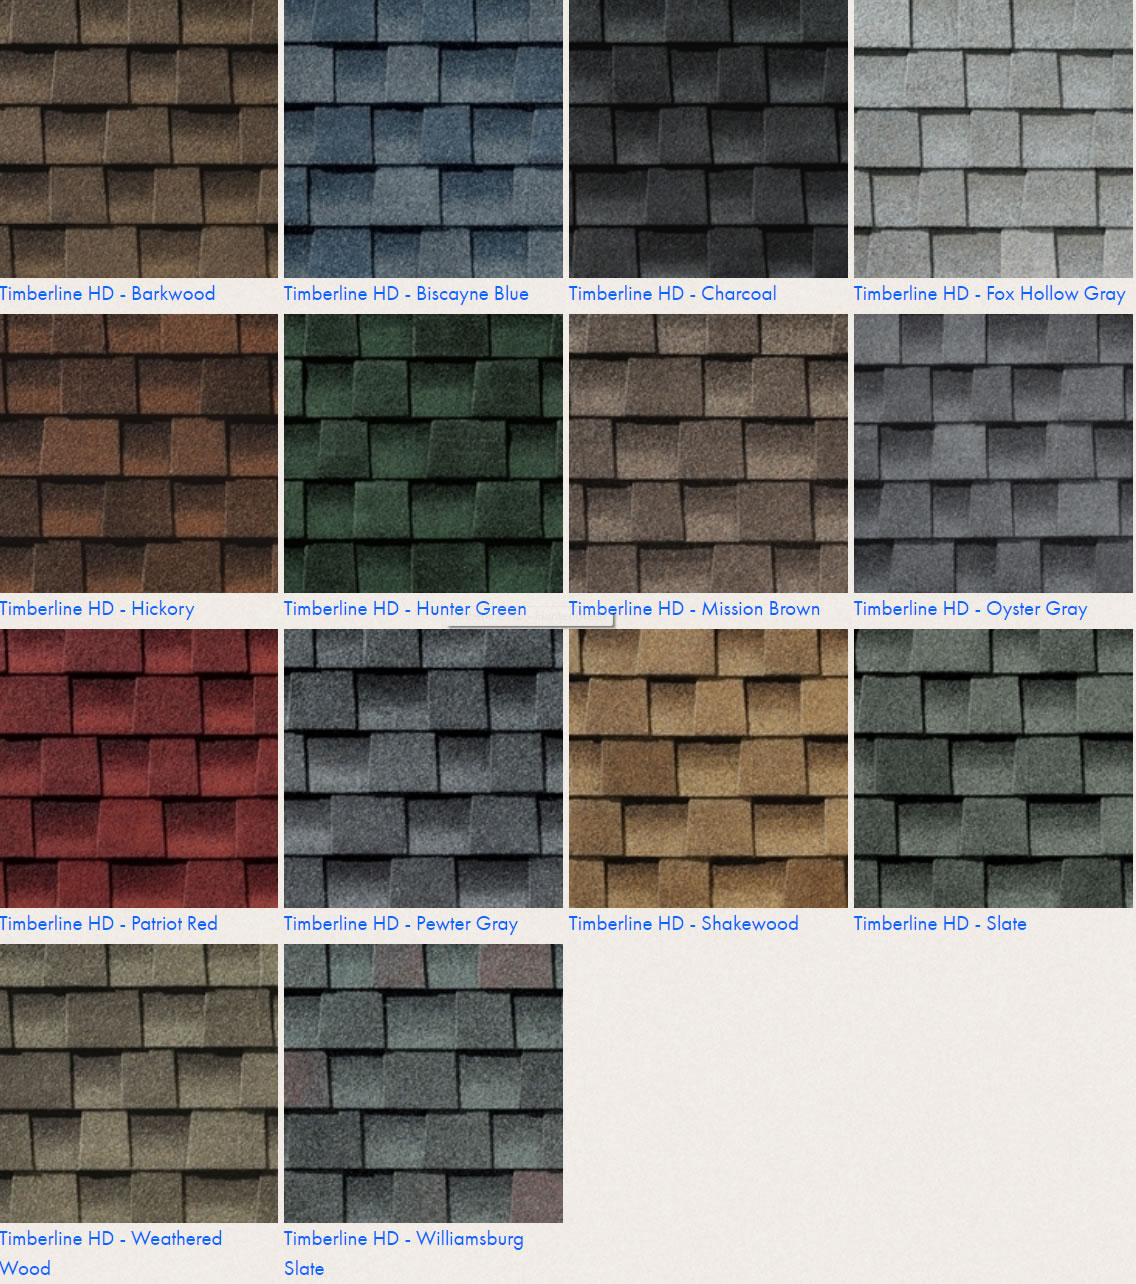 Gaf Shingles Ottawa Valley Roofing Mckay Roofing